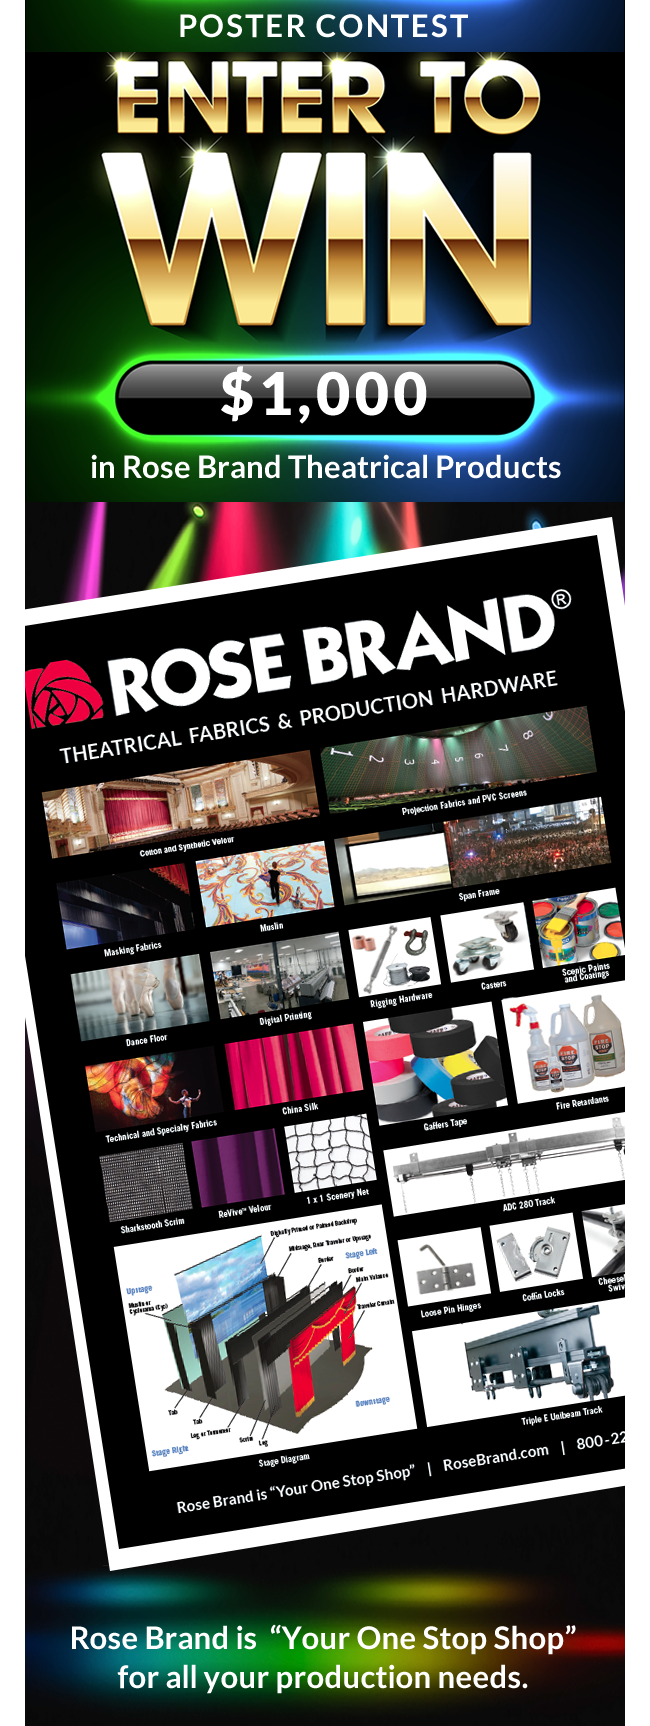 How to WIN the $1,000 in Rose Brand® Theatrical Products